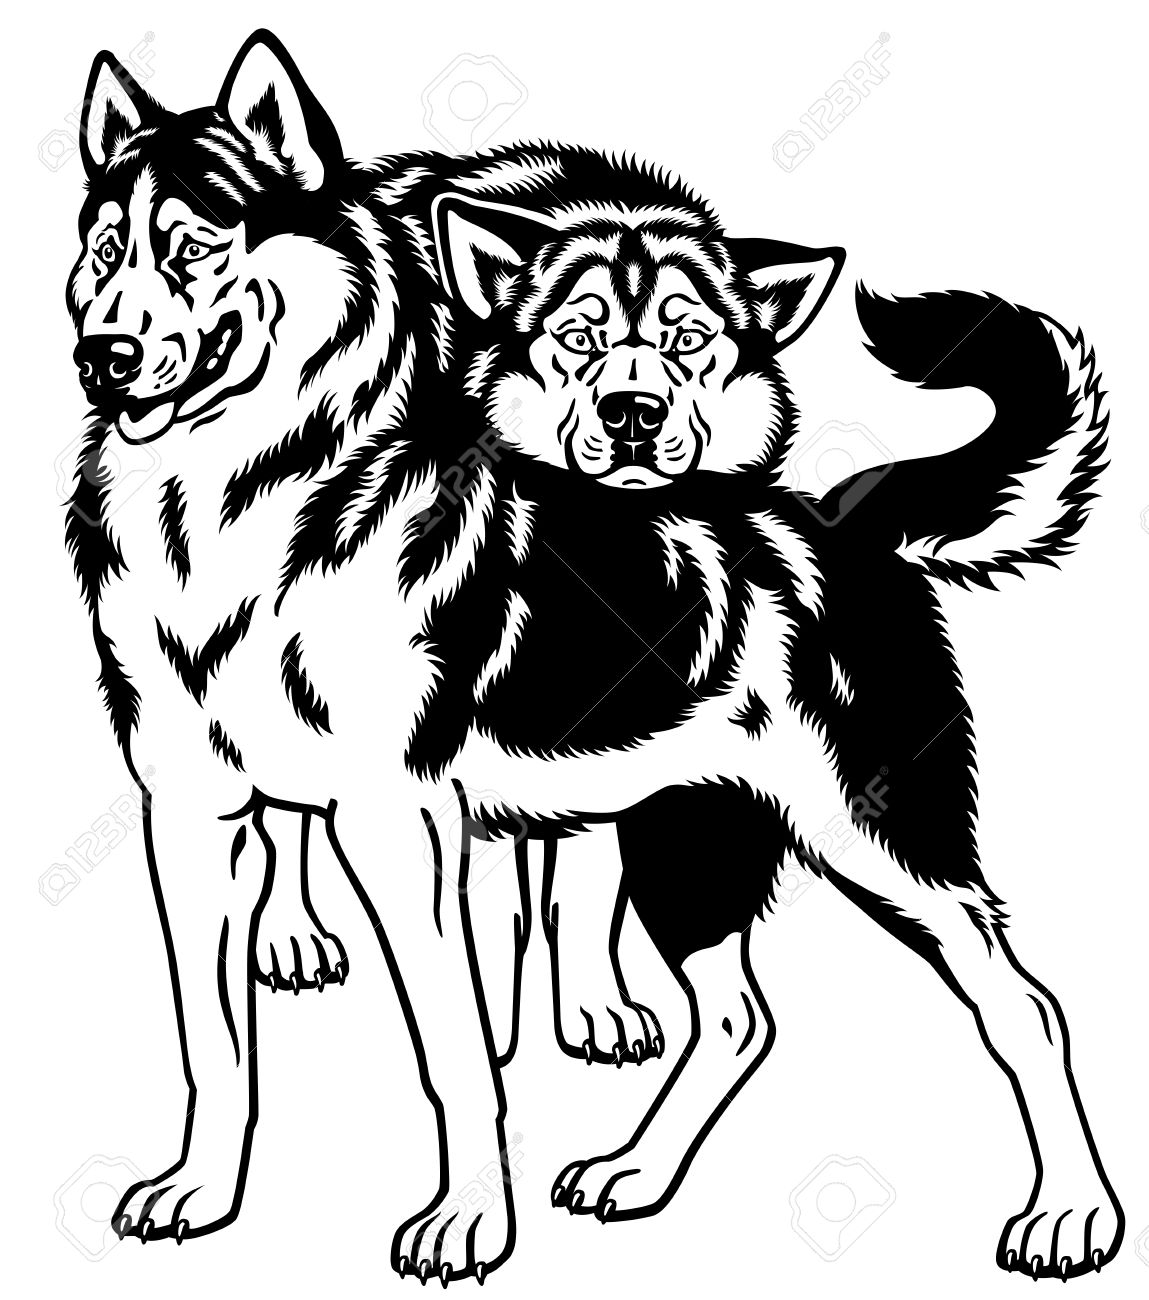 1 024 siberian husky dogs cliparts stock vector and royalty free